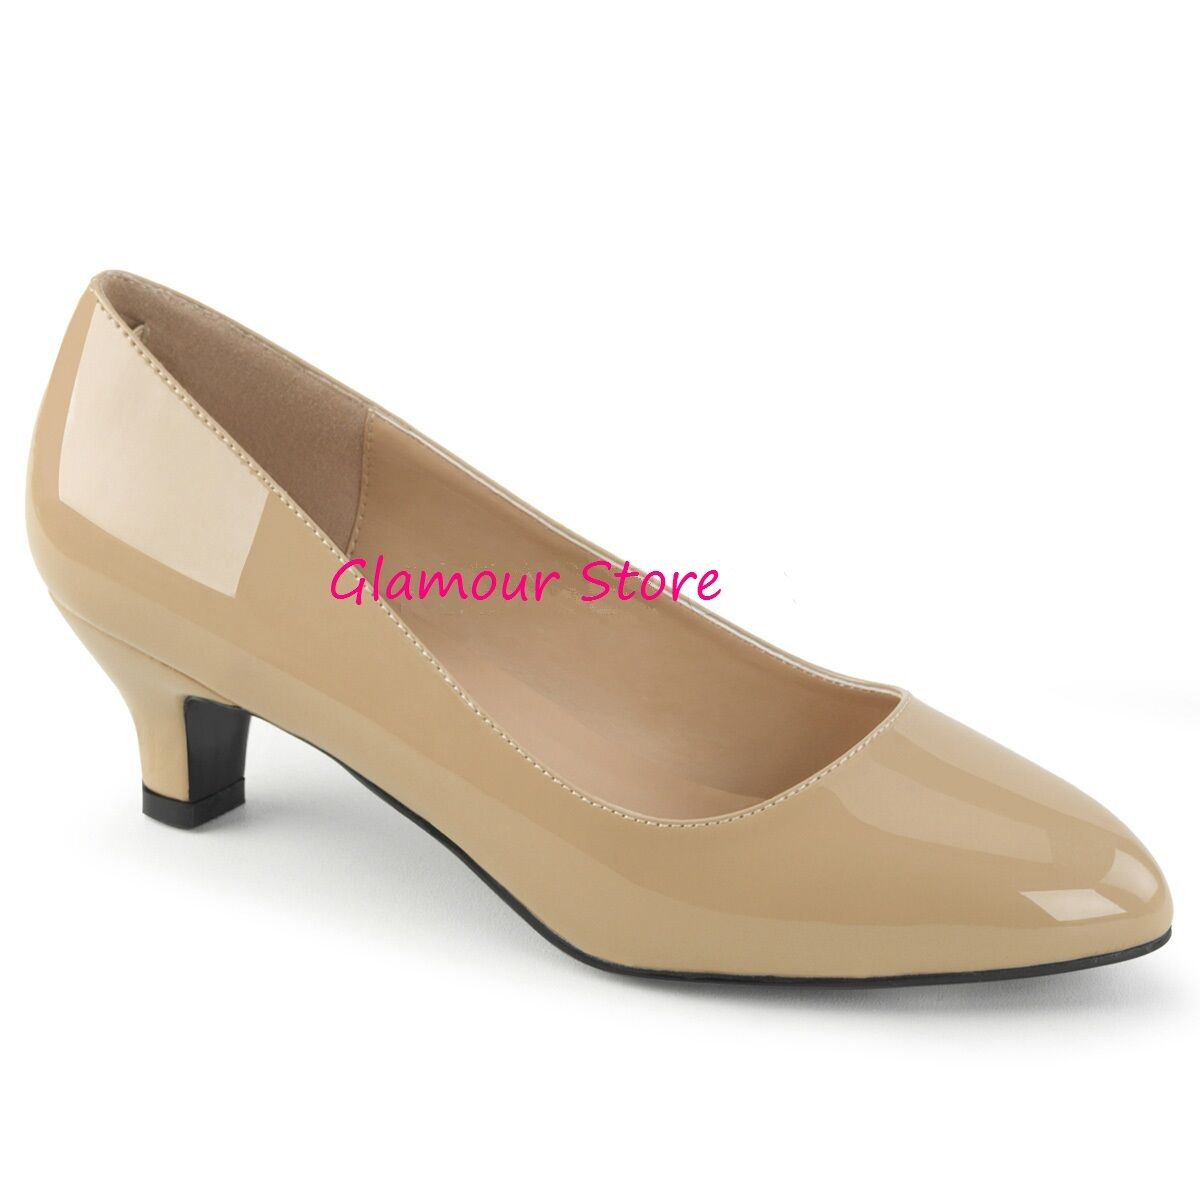 DECOLTE' tacco 5 cm CREMA LUCIDO dal 39 al 46 shoes SEXY fashion GLAMOUR